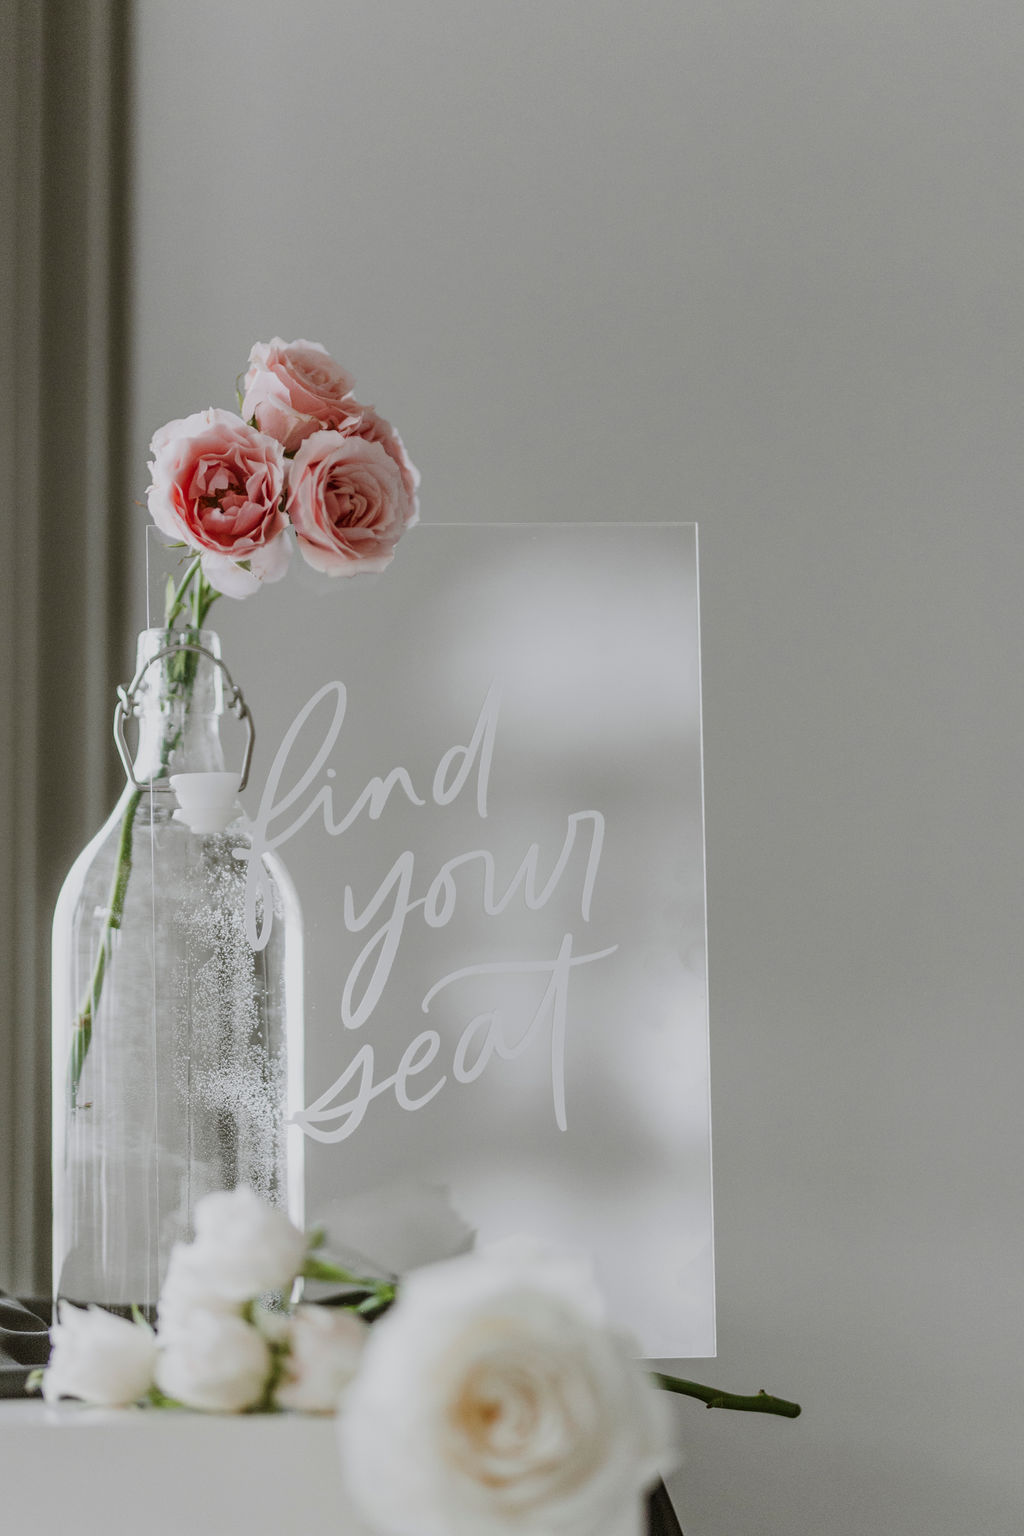 Find Your Seat Acrylic Signage - Bexley Design Co